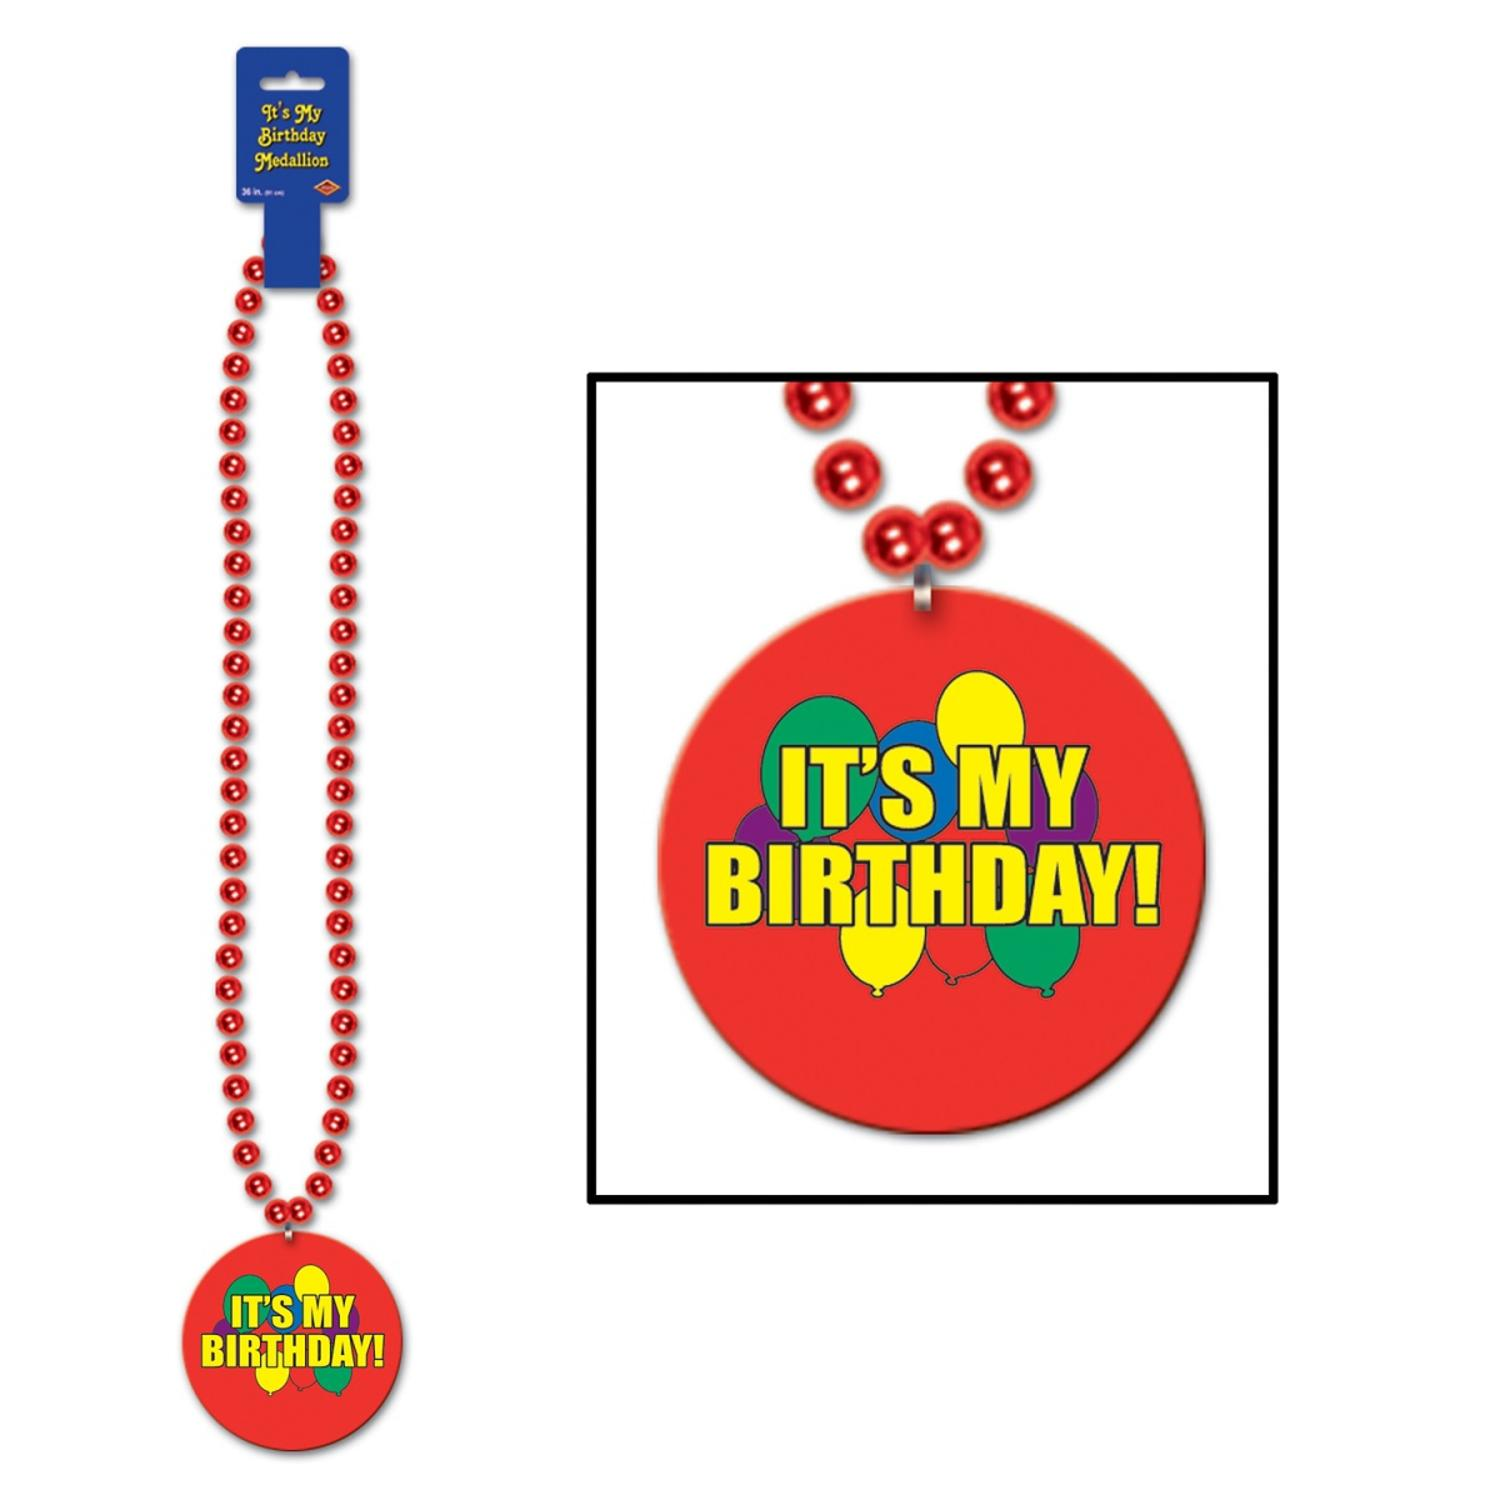 """Pack of 12 Metallic Red Beaded Necklace with """"It's My Birthday"""" Medallion 36"""""""